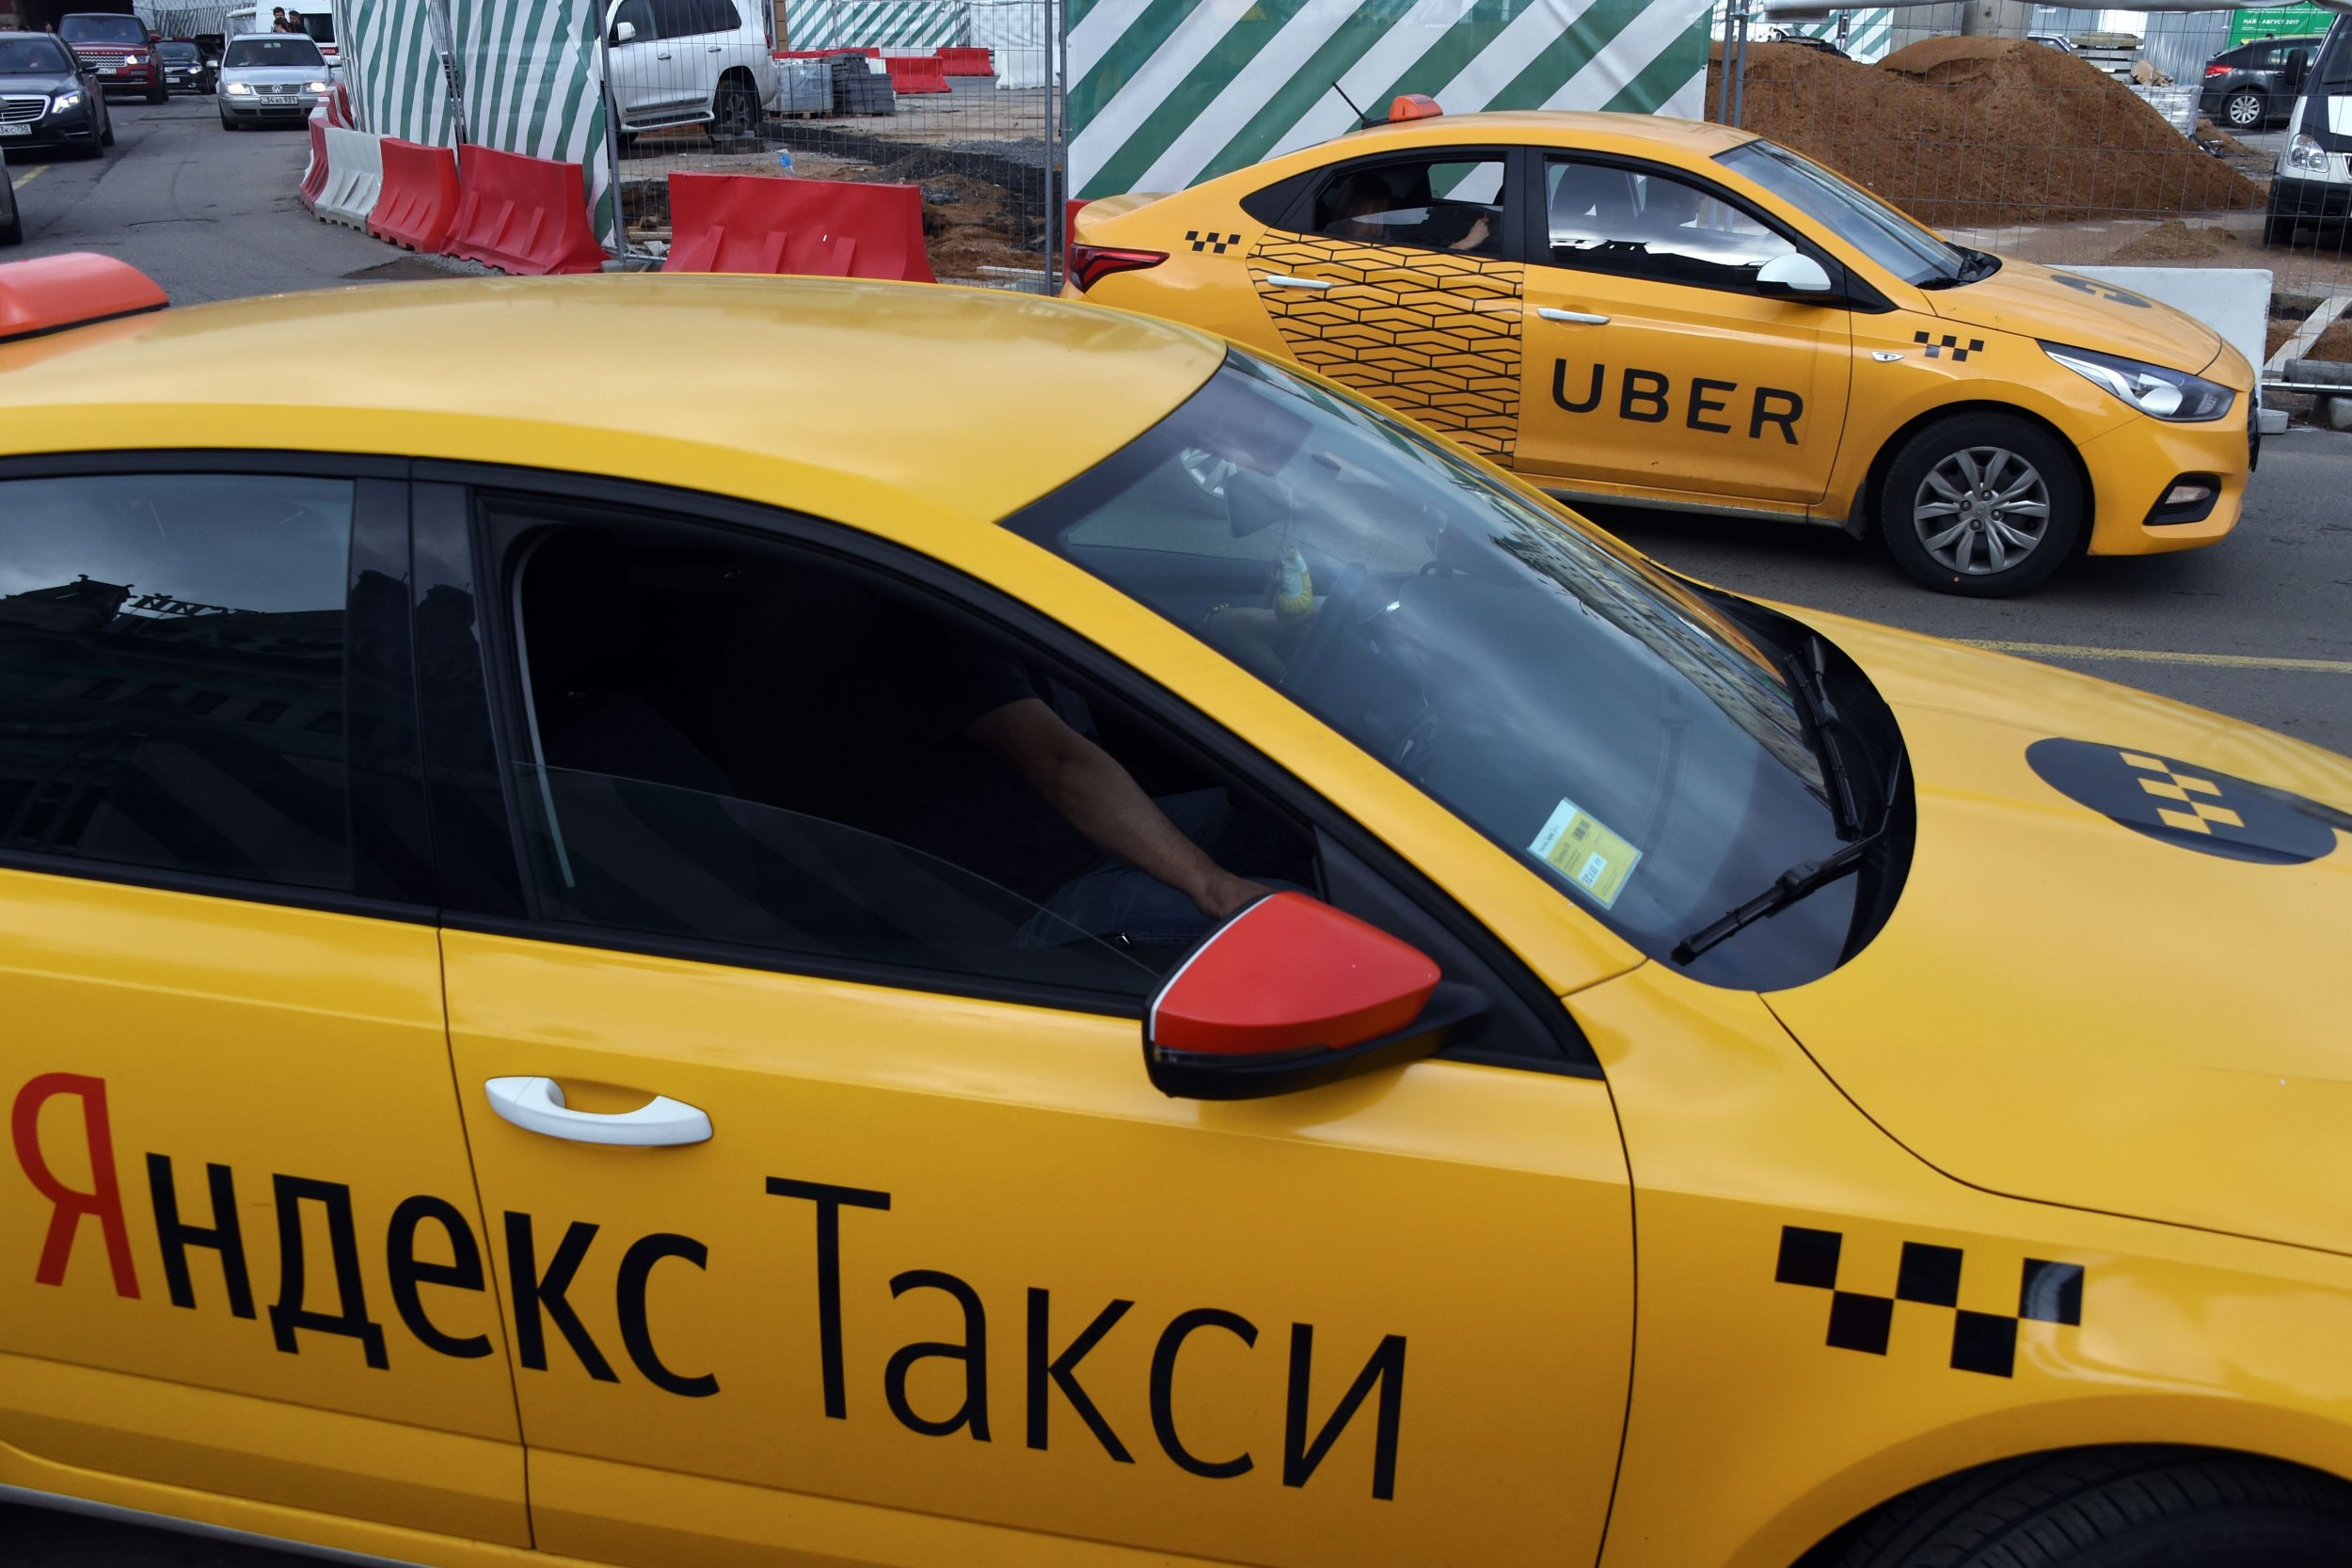 NATO Member State Fears Russia's New Taxi App May Snoop on Users